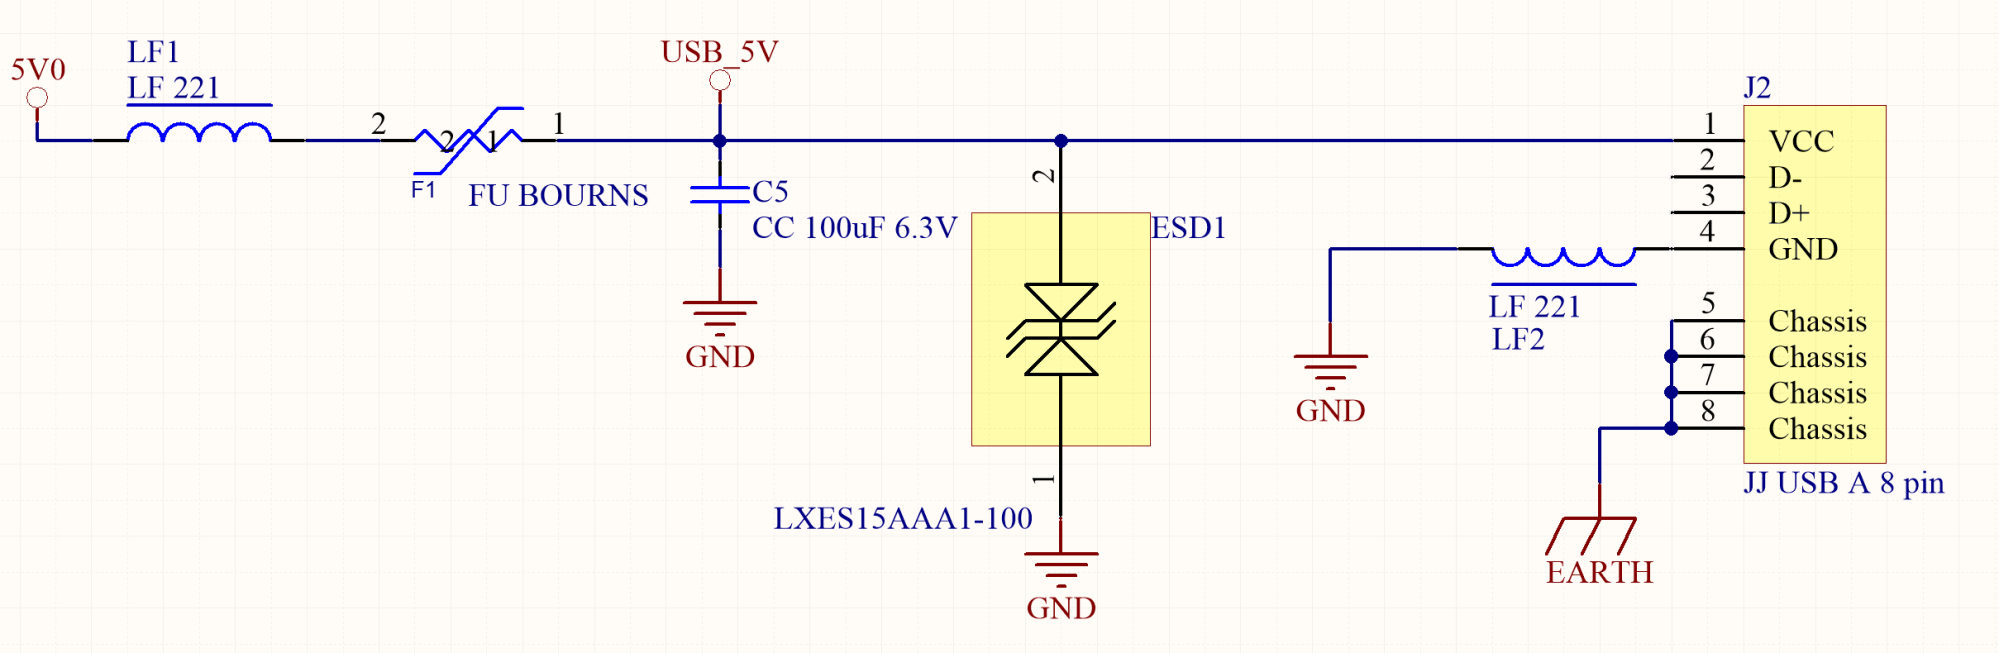 hight resolution of a protection from external devices interferences and current overload must be added between the power supply and the usb type a host connector